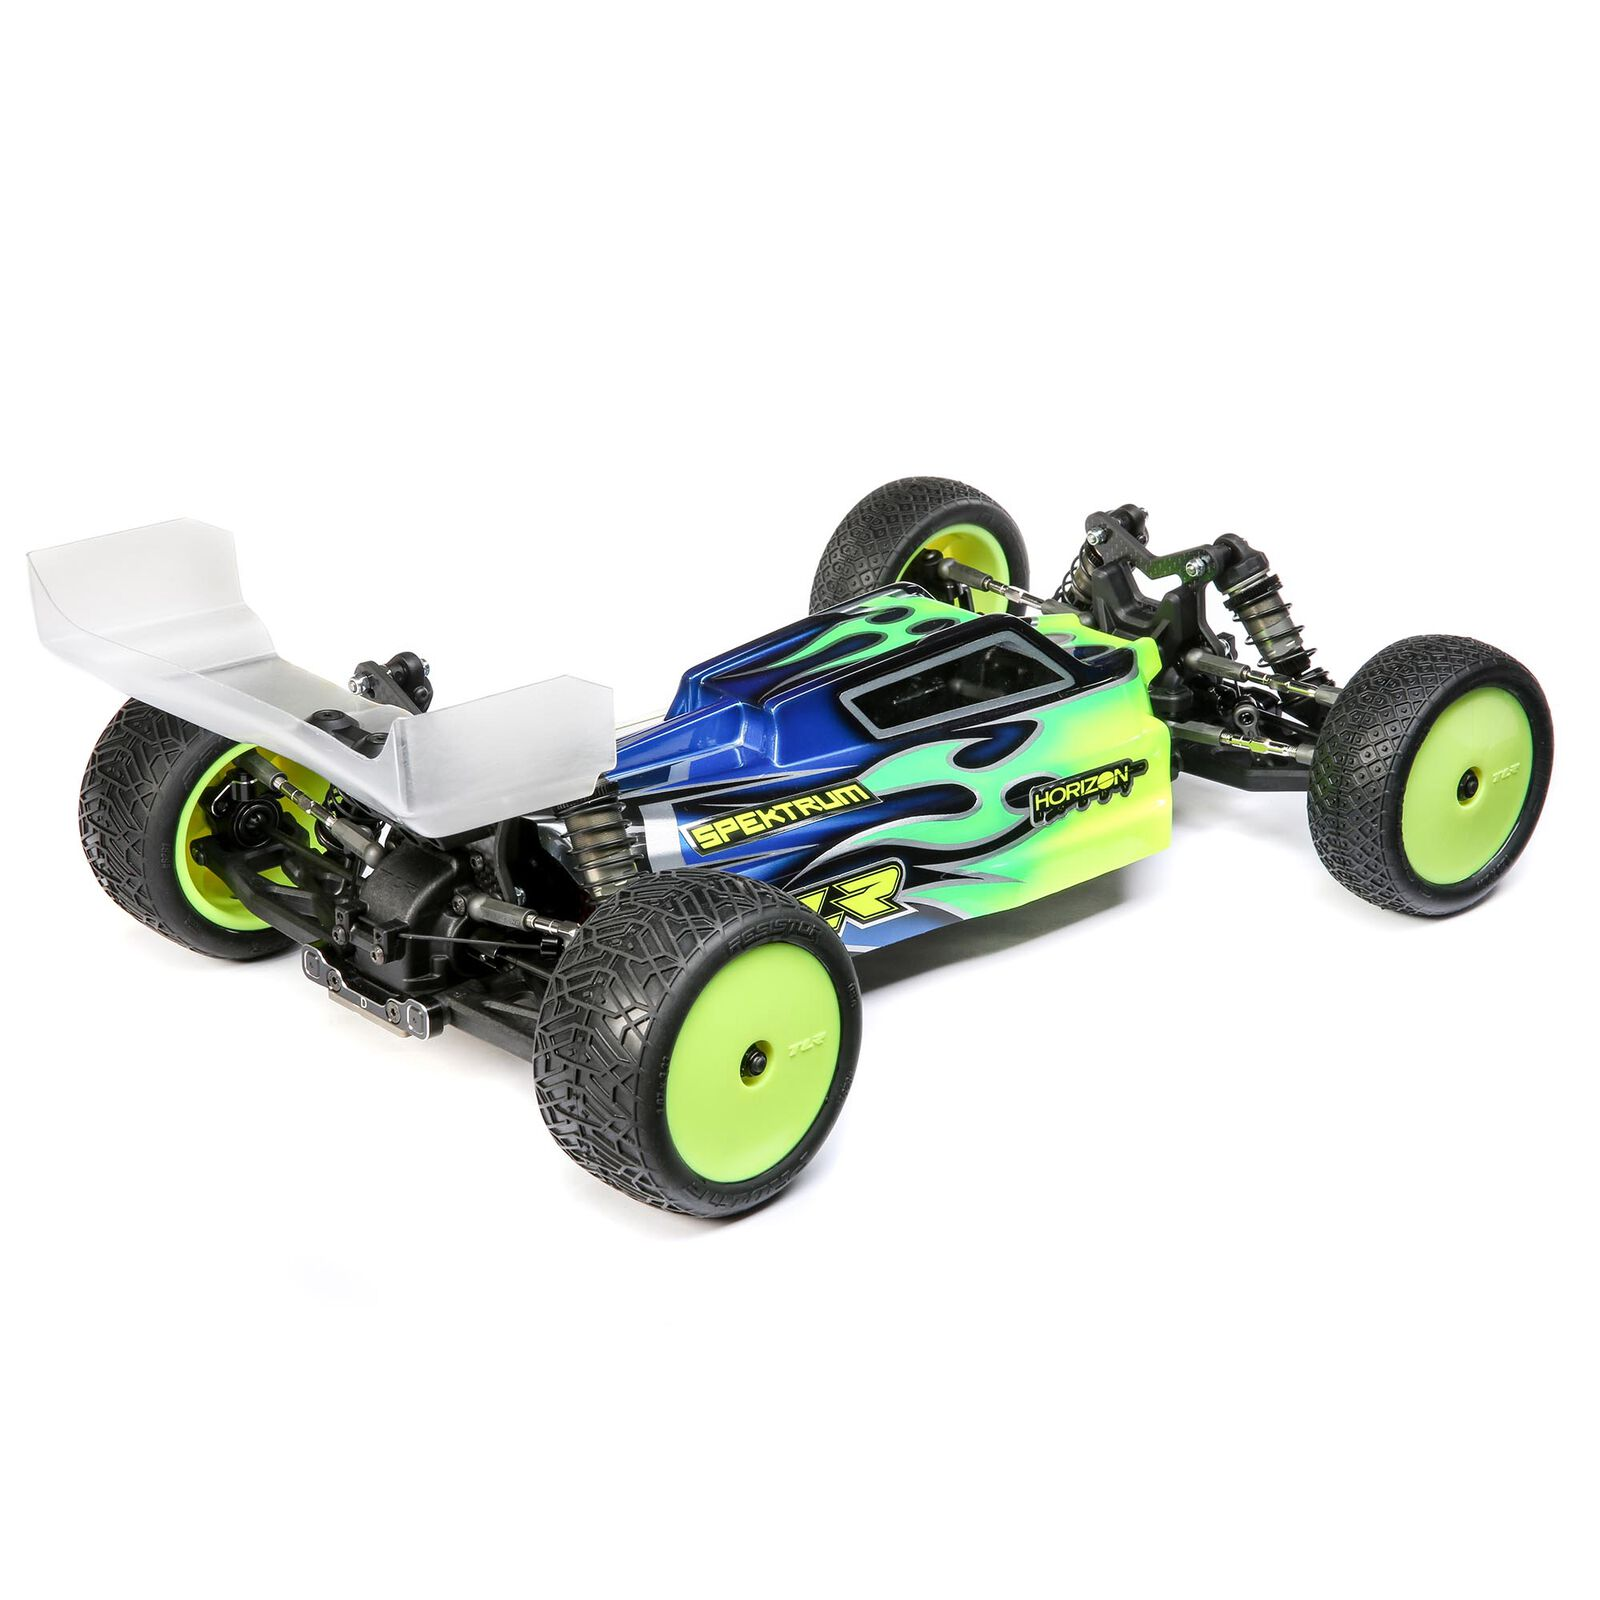 1/10 22X-4 4WD Buggy Race Kit